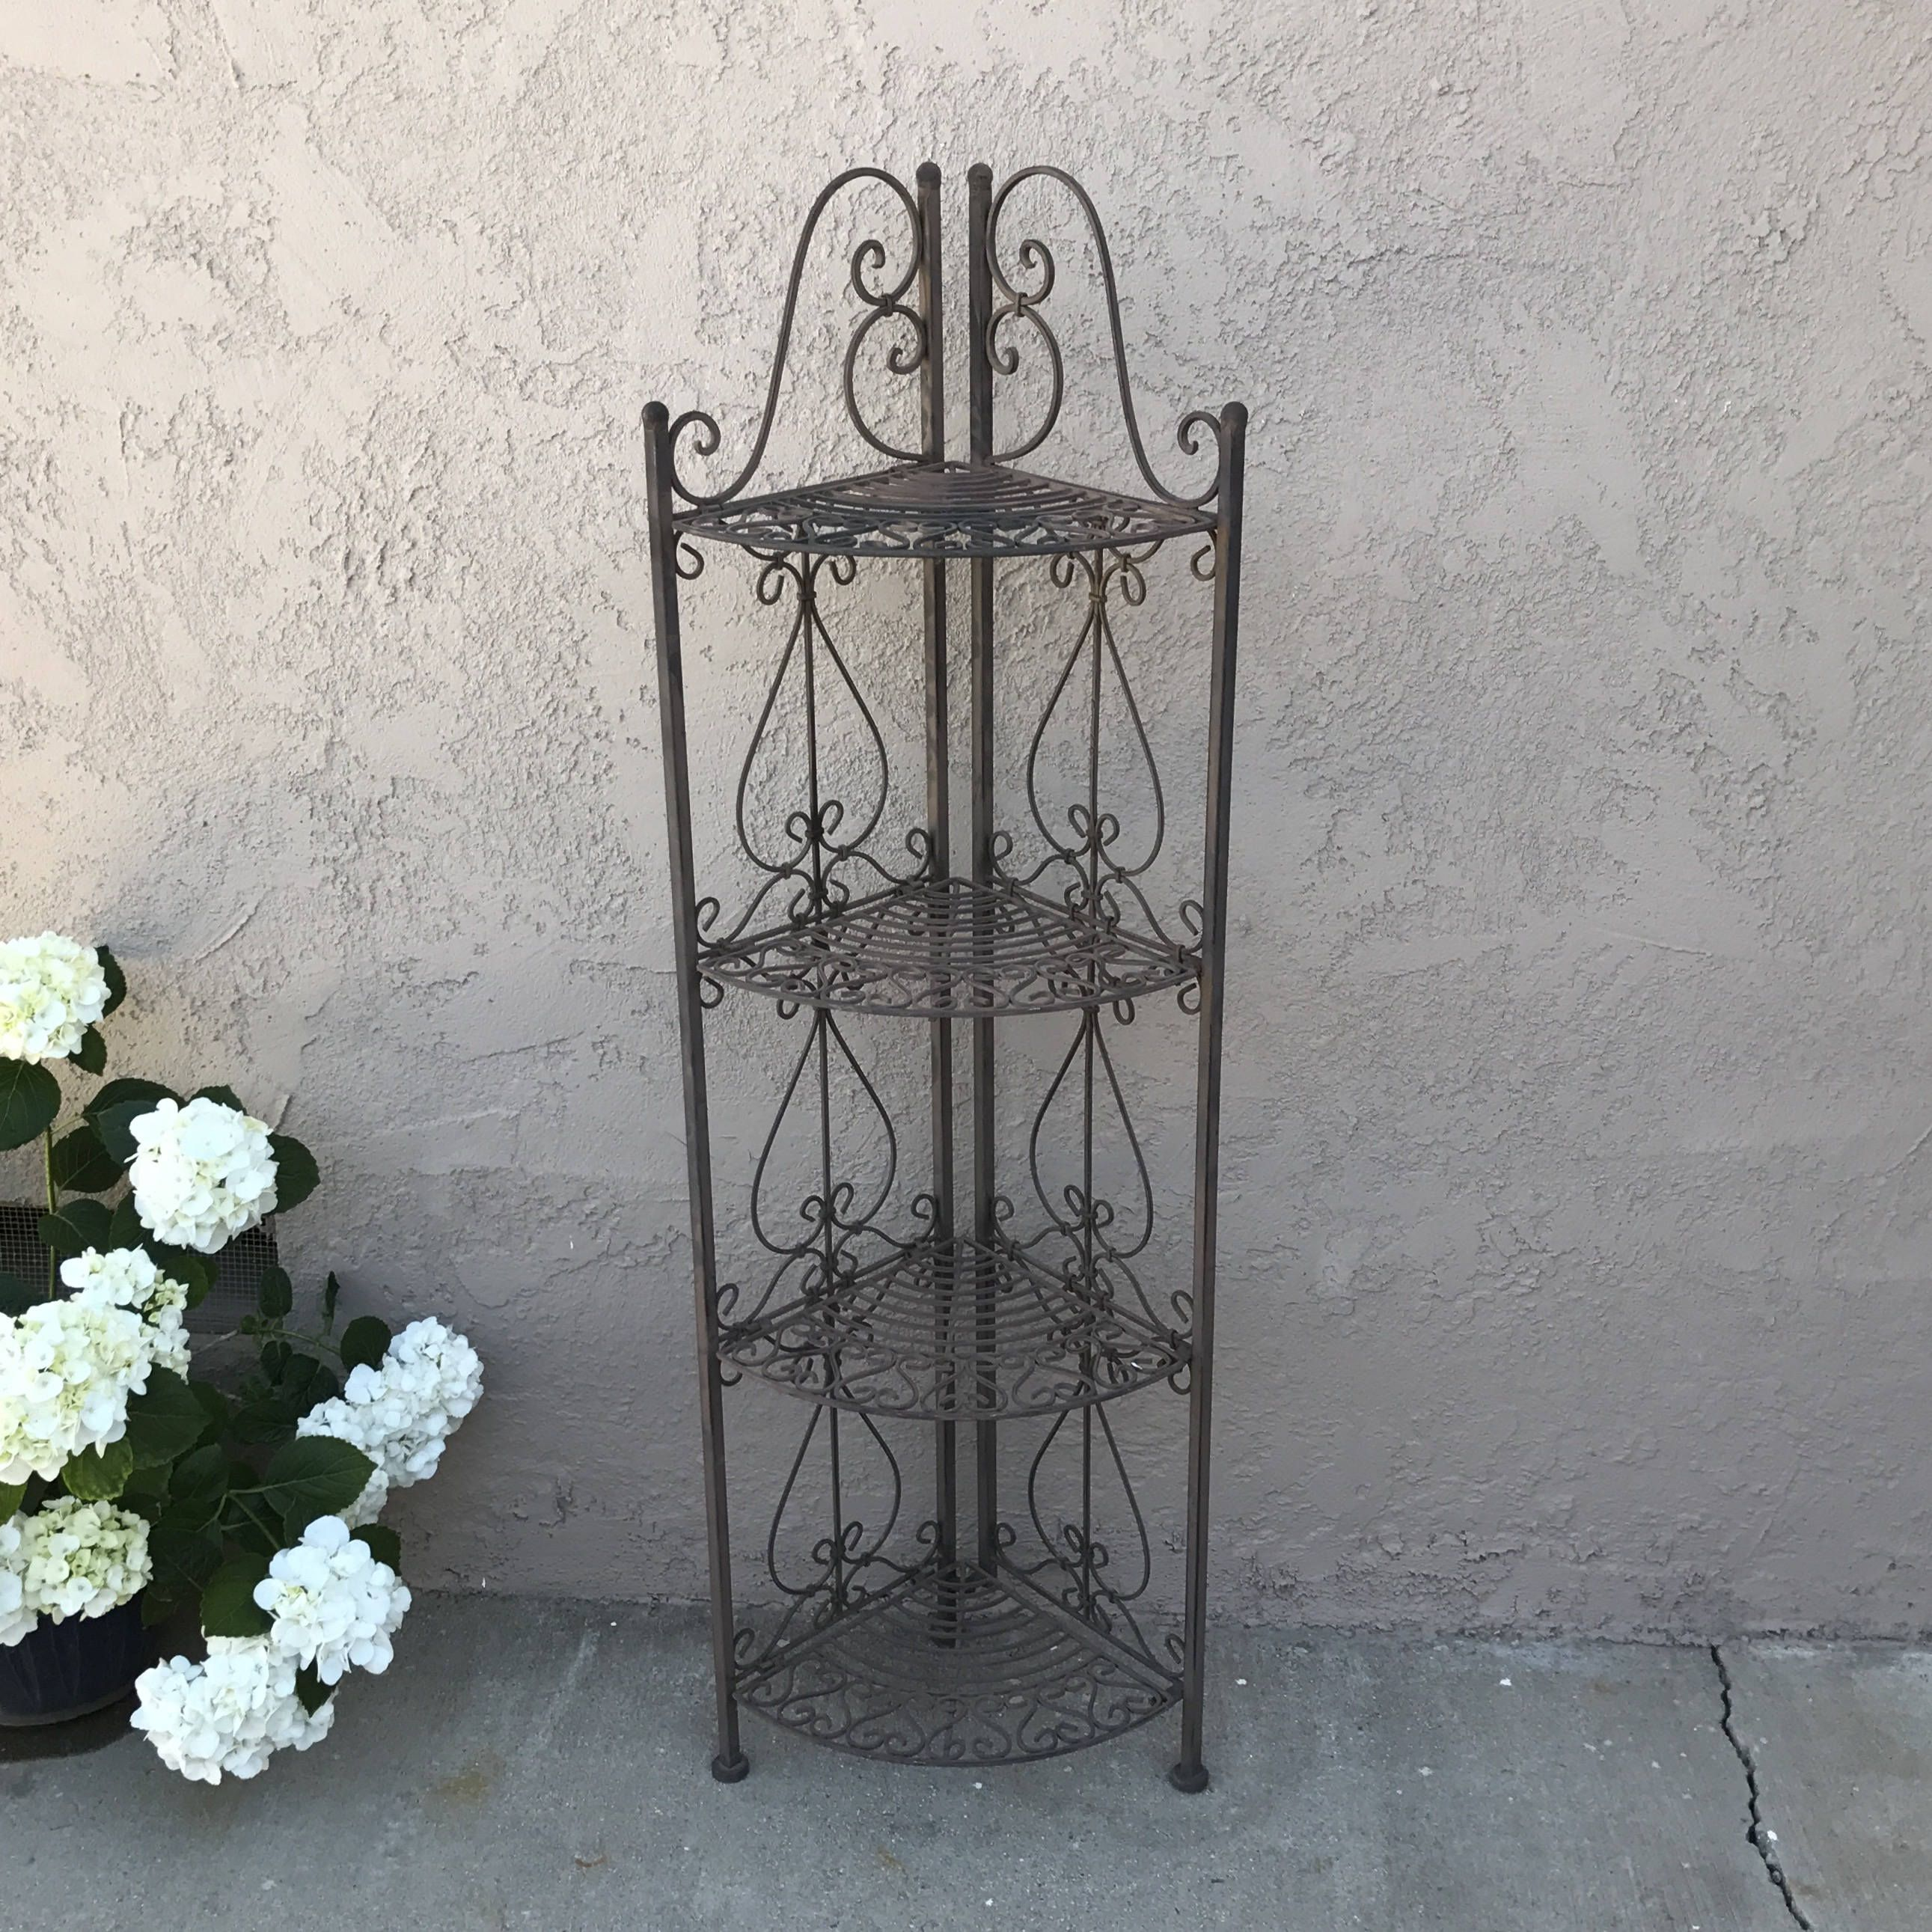 a5bd39c98aa7 Wrought Iron Garden Plant Stand, Wrought Iron Corner Shelf, Folding 4 tier  Metal Shelf, Plant Rack, Patio Shelf for Plants, Scrolly Iron by ...